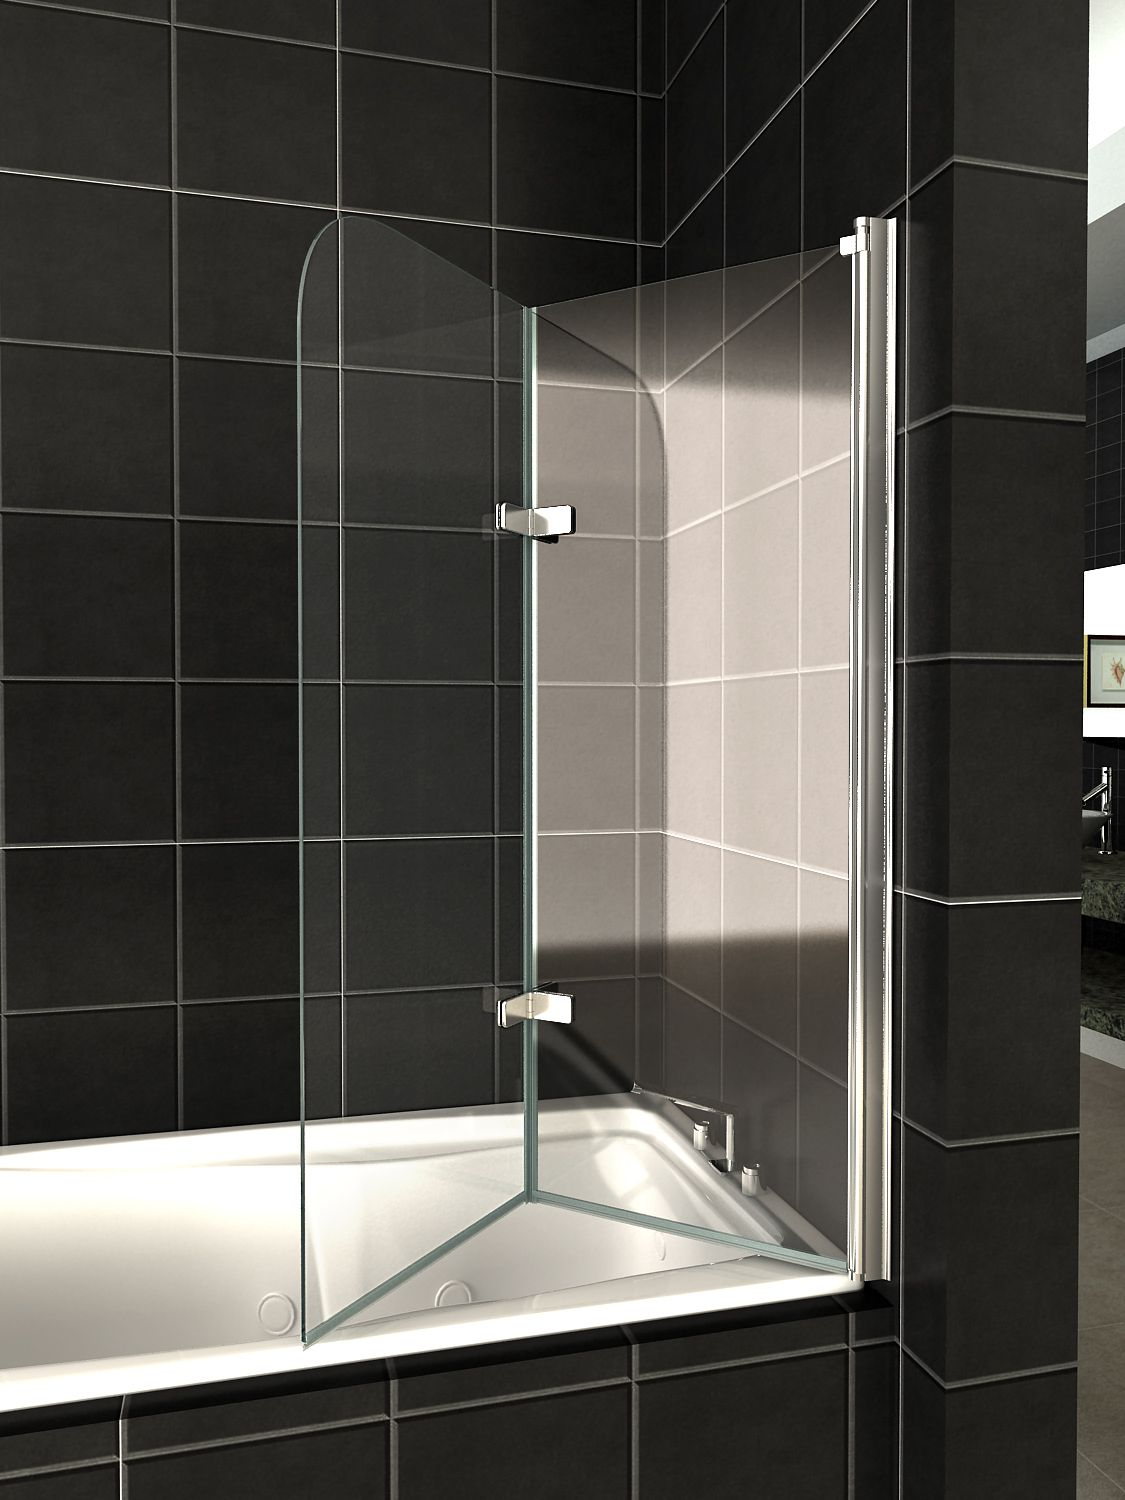 Folding Glass Shower Doors Glass Over Bath 2 Fold Folding Shower Screen Bath Door Panel Seal Bath Shower Screens Shower Doors Shower Screen